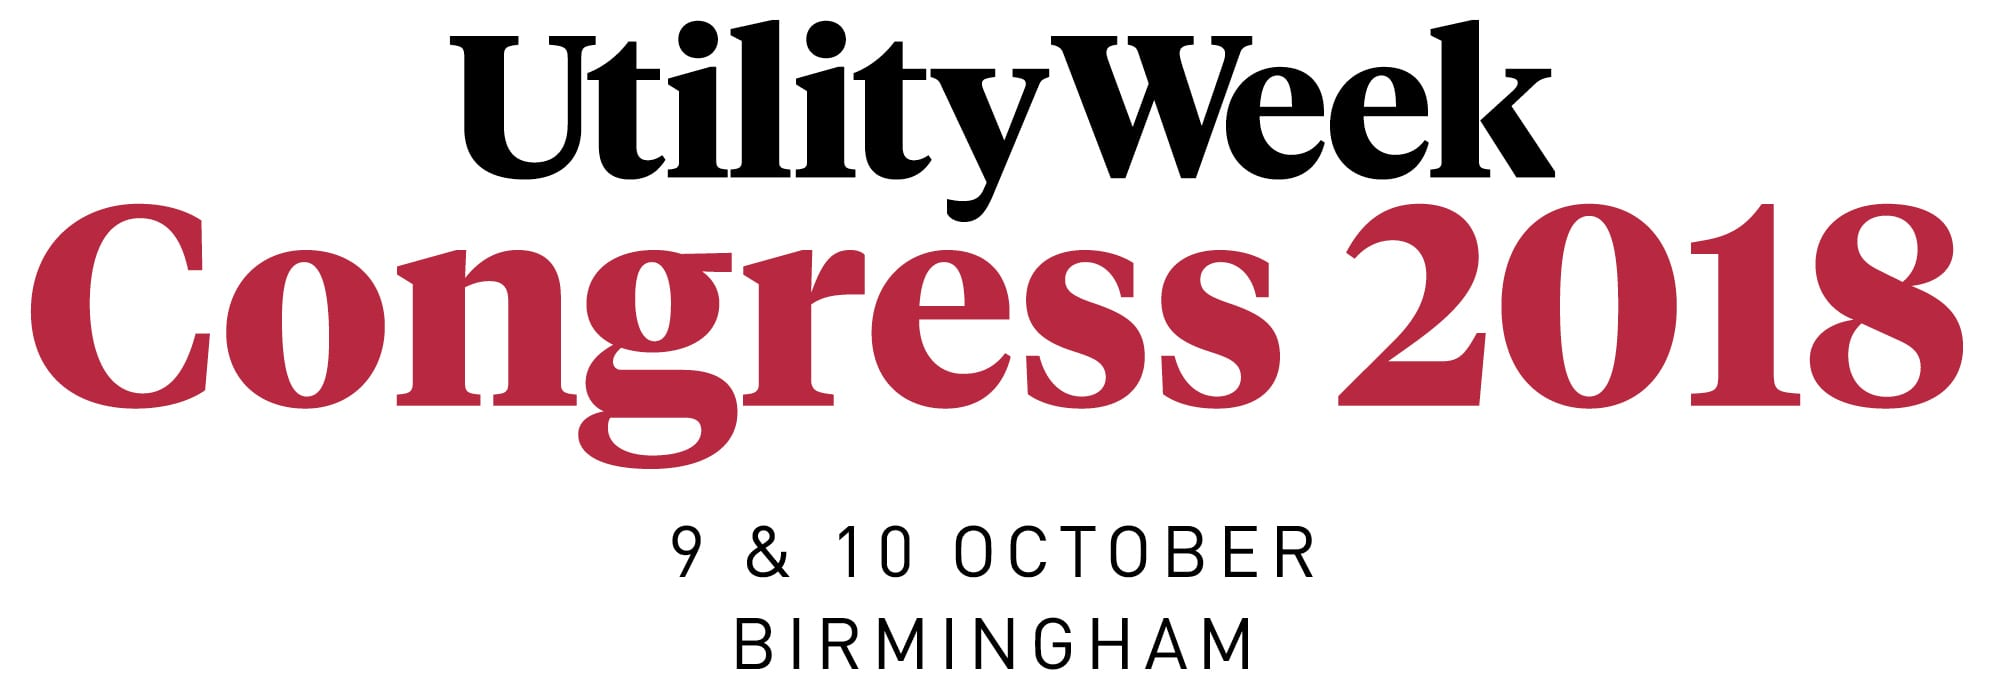 Utility week Congress - 2018 - Logo